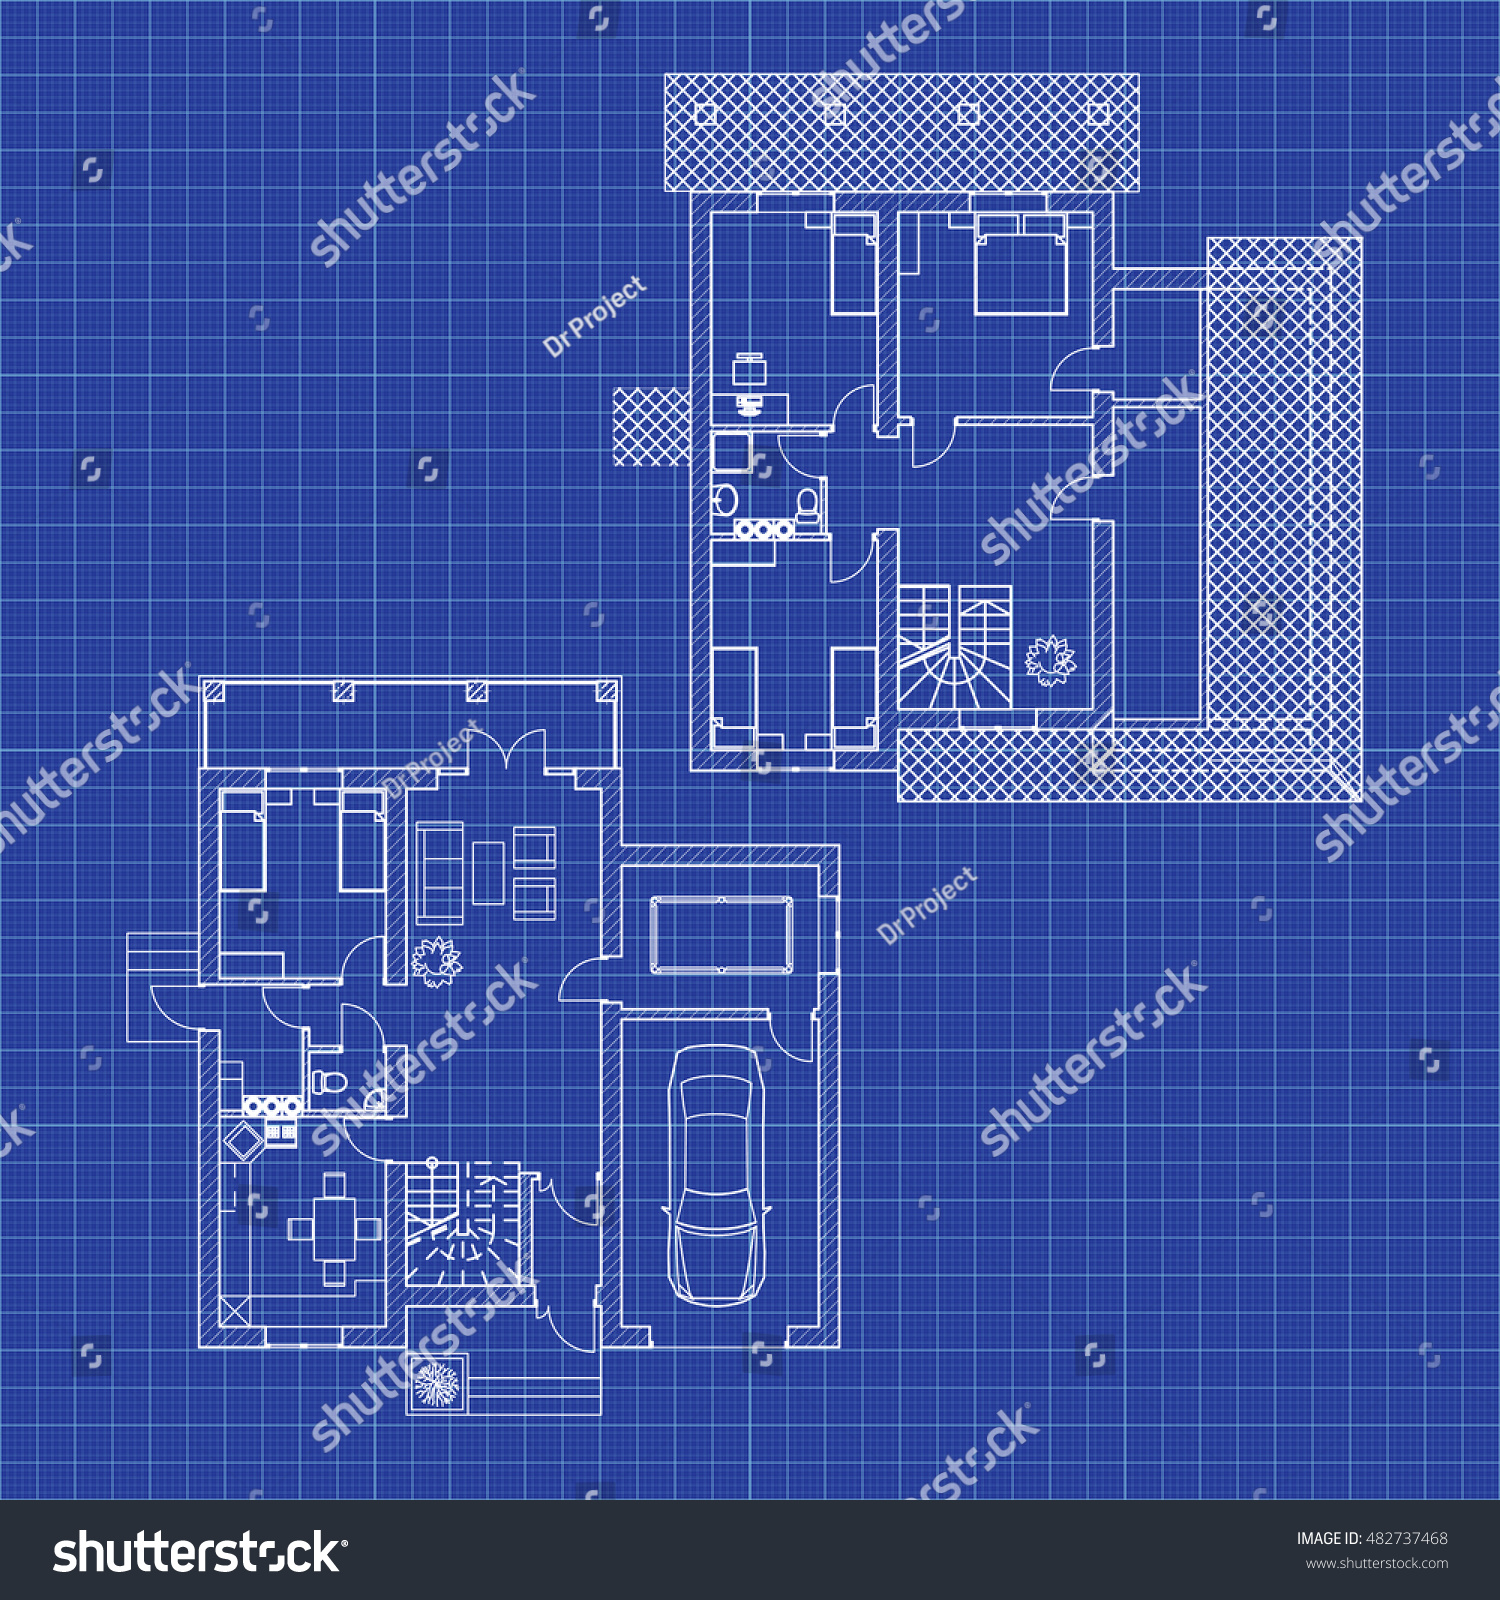 Attractive Floor Plans Of A Modern Apartment. Vector Interior Design. Architectural  Blueprint.